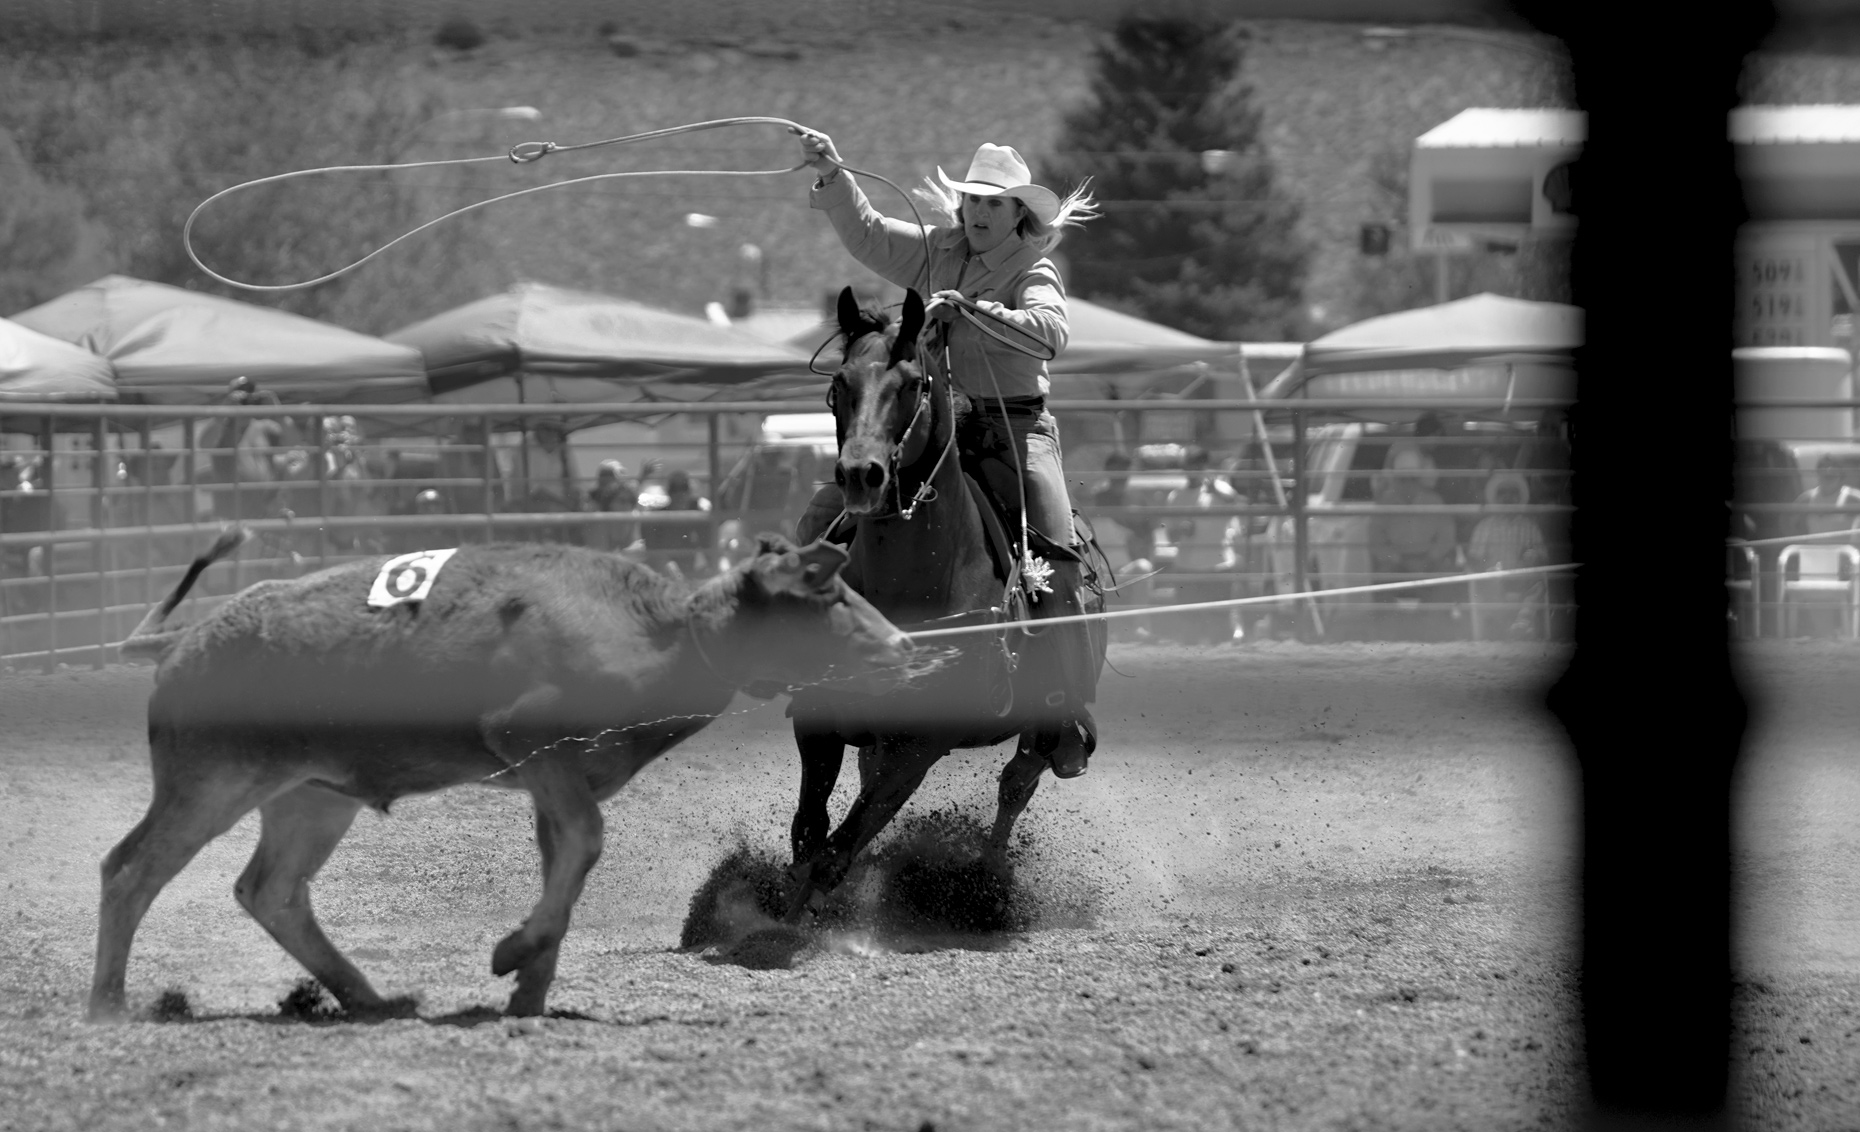 Roadtripping_BridgeportRodeo_CowgirlRopingNumber6Calf_Action_Personal_Retouched_Web